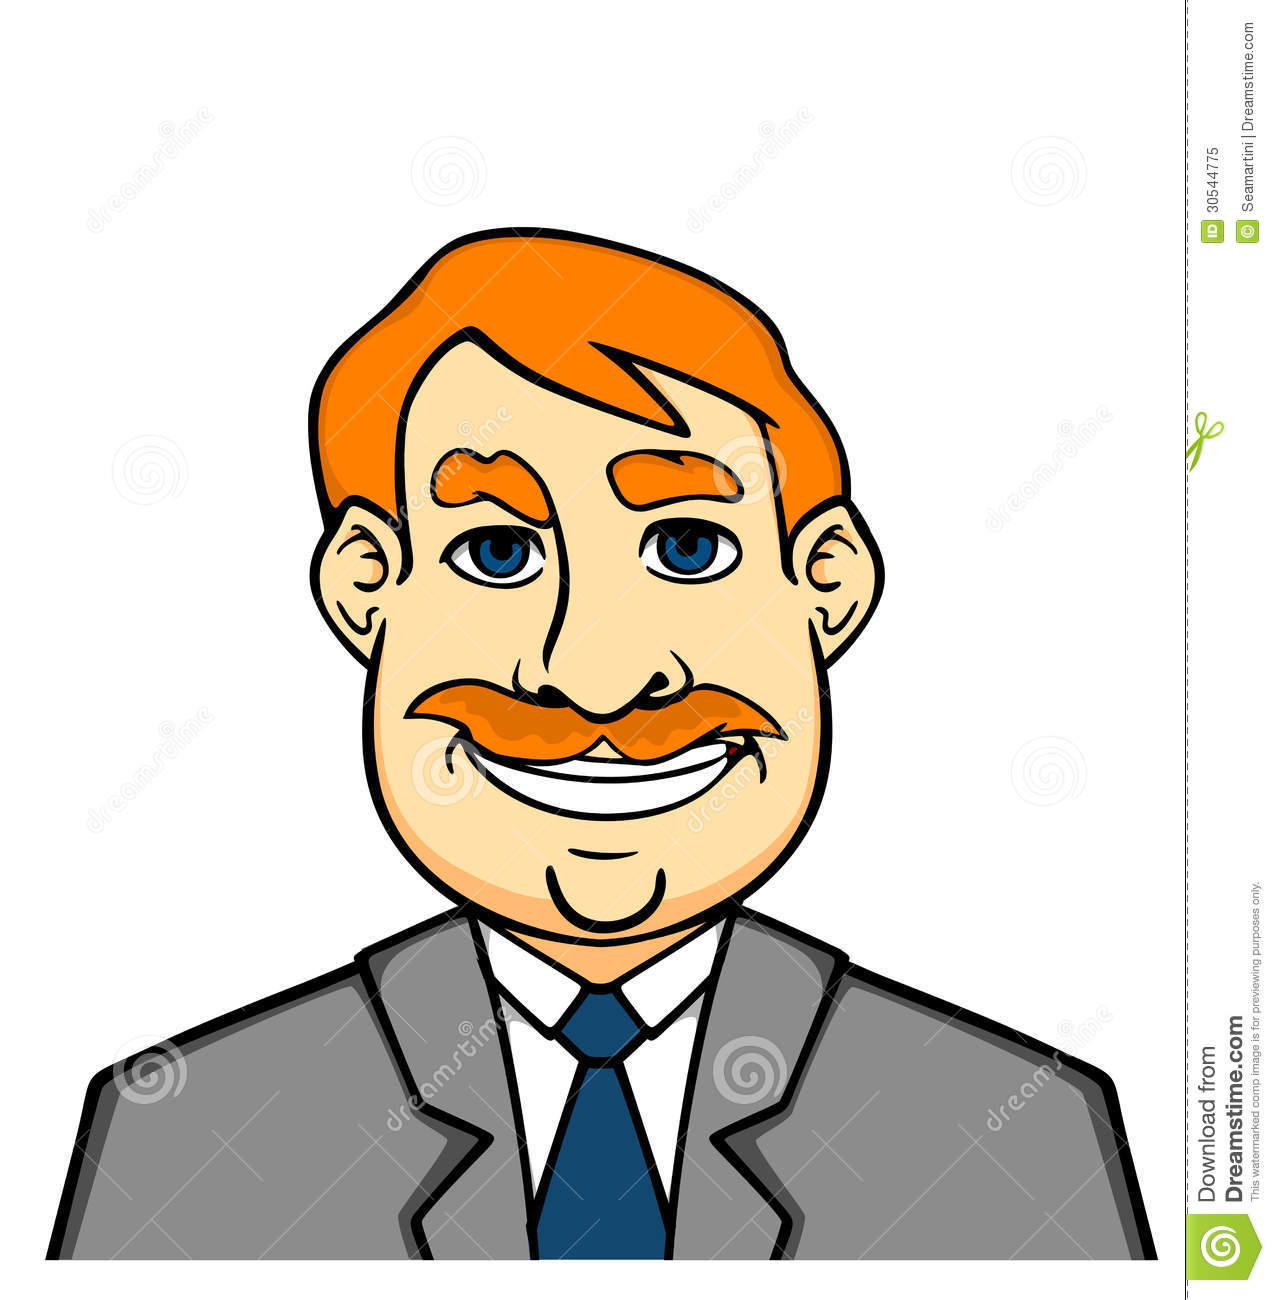 Adult Smiling Man Royalty Free Stock Photo - Image 30544775-3705